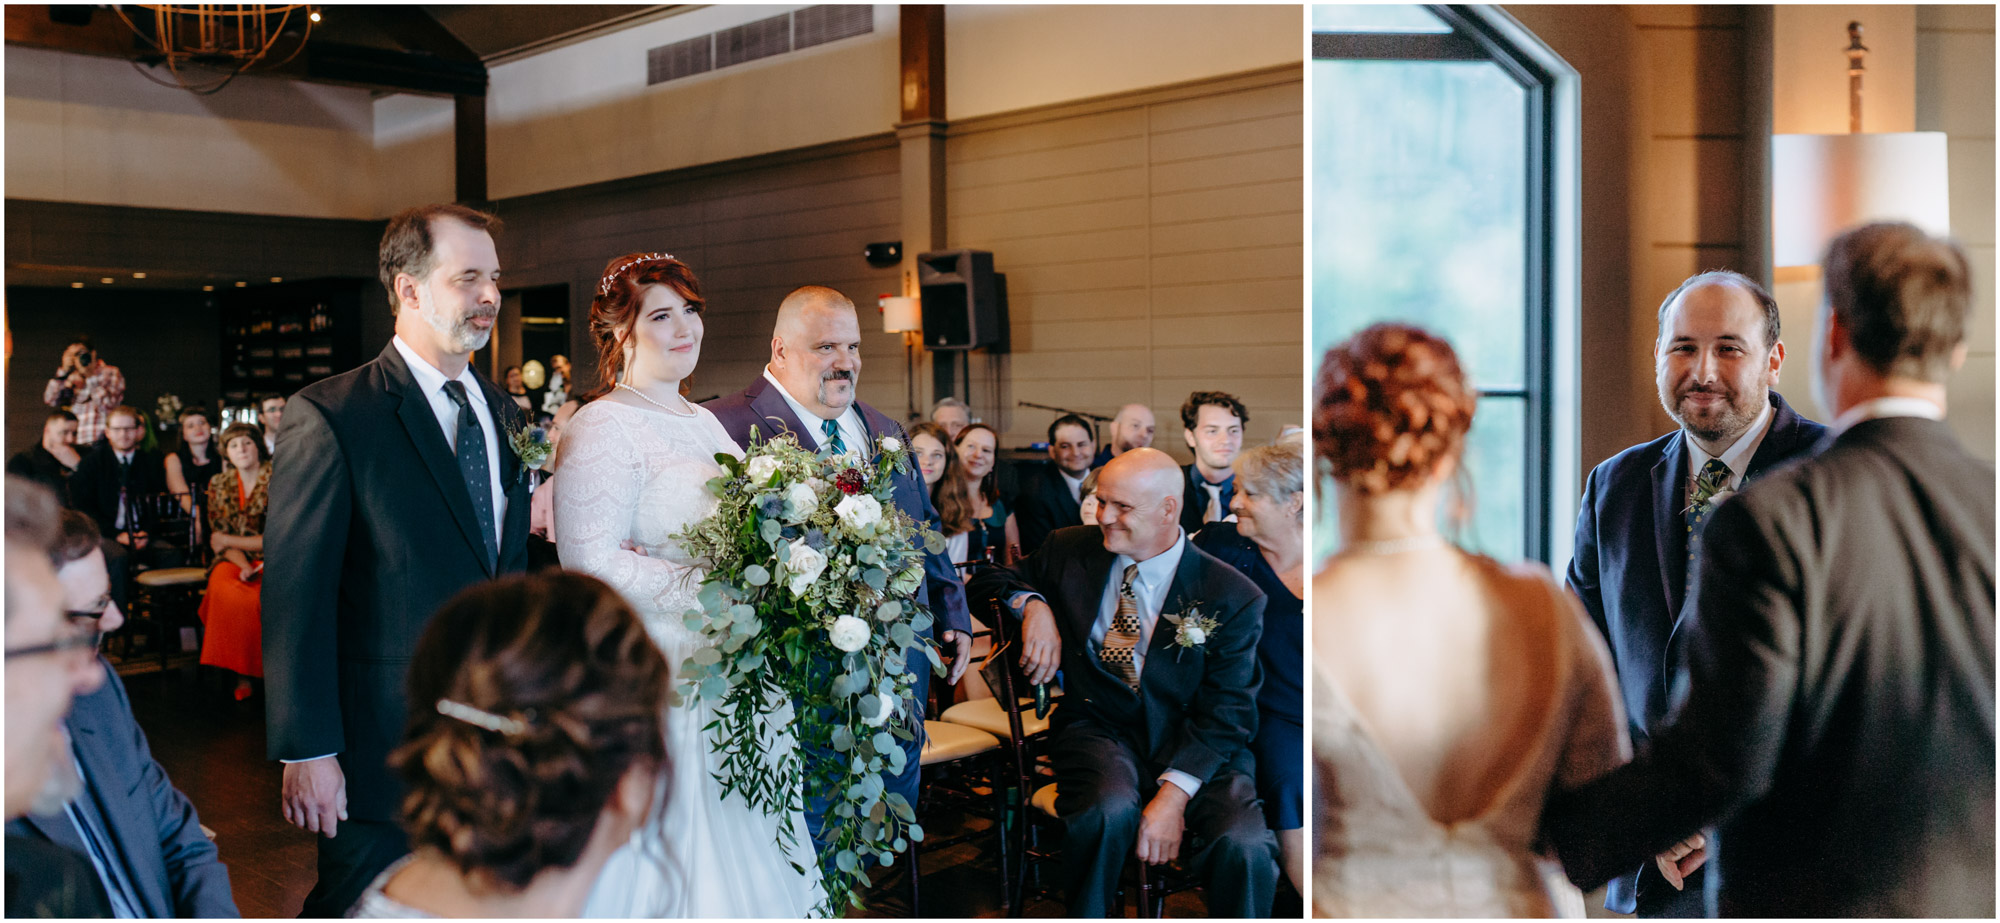 Bride walking down the aisle and groom smiling at her during ceremony - by Ashleigh Laureen Photography at LaBelle Winery in Amherst, New Hampshire